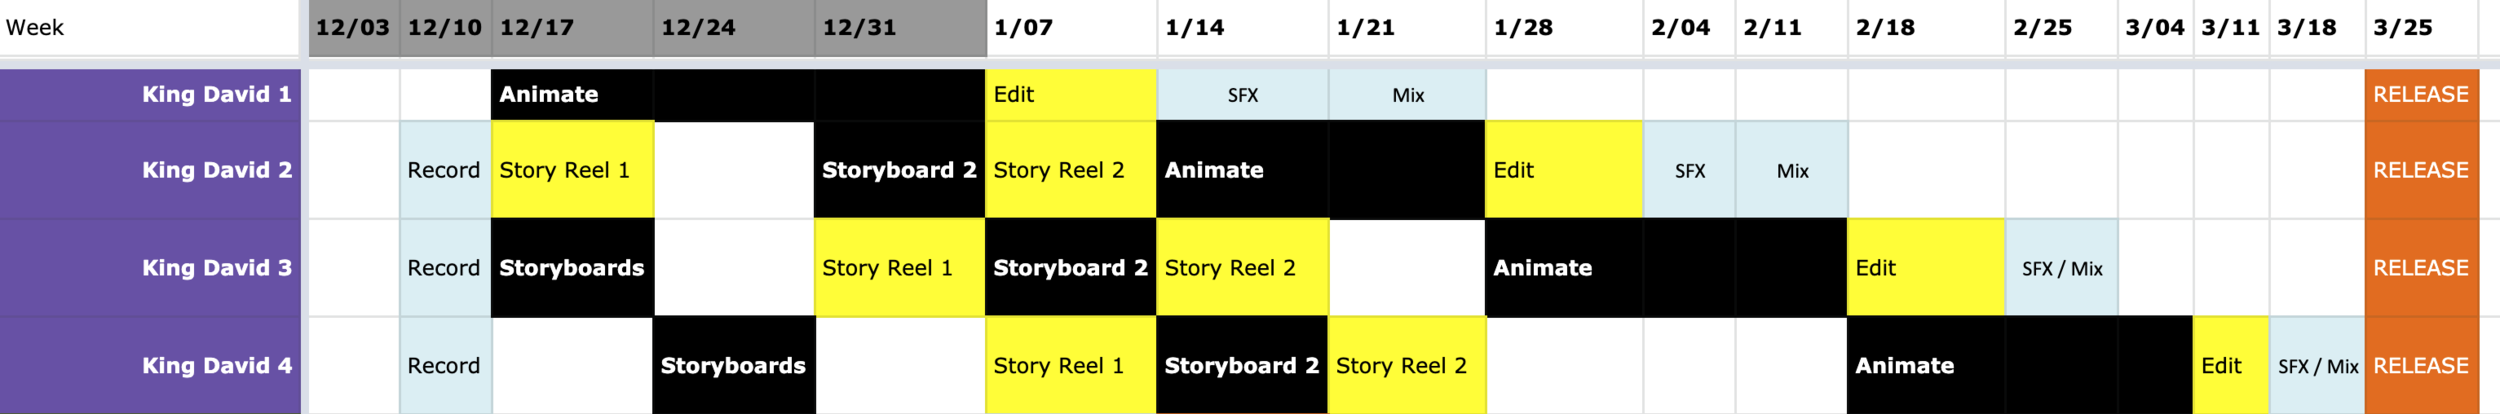 The final schedule, with far less buffer than I'd like, considering all of the new hires.